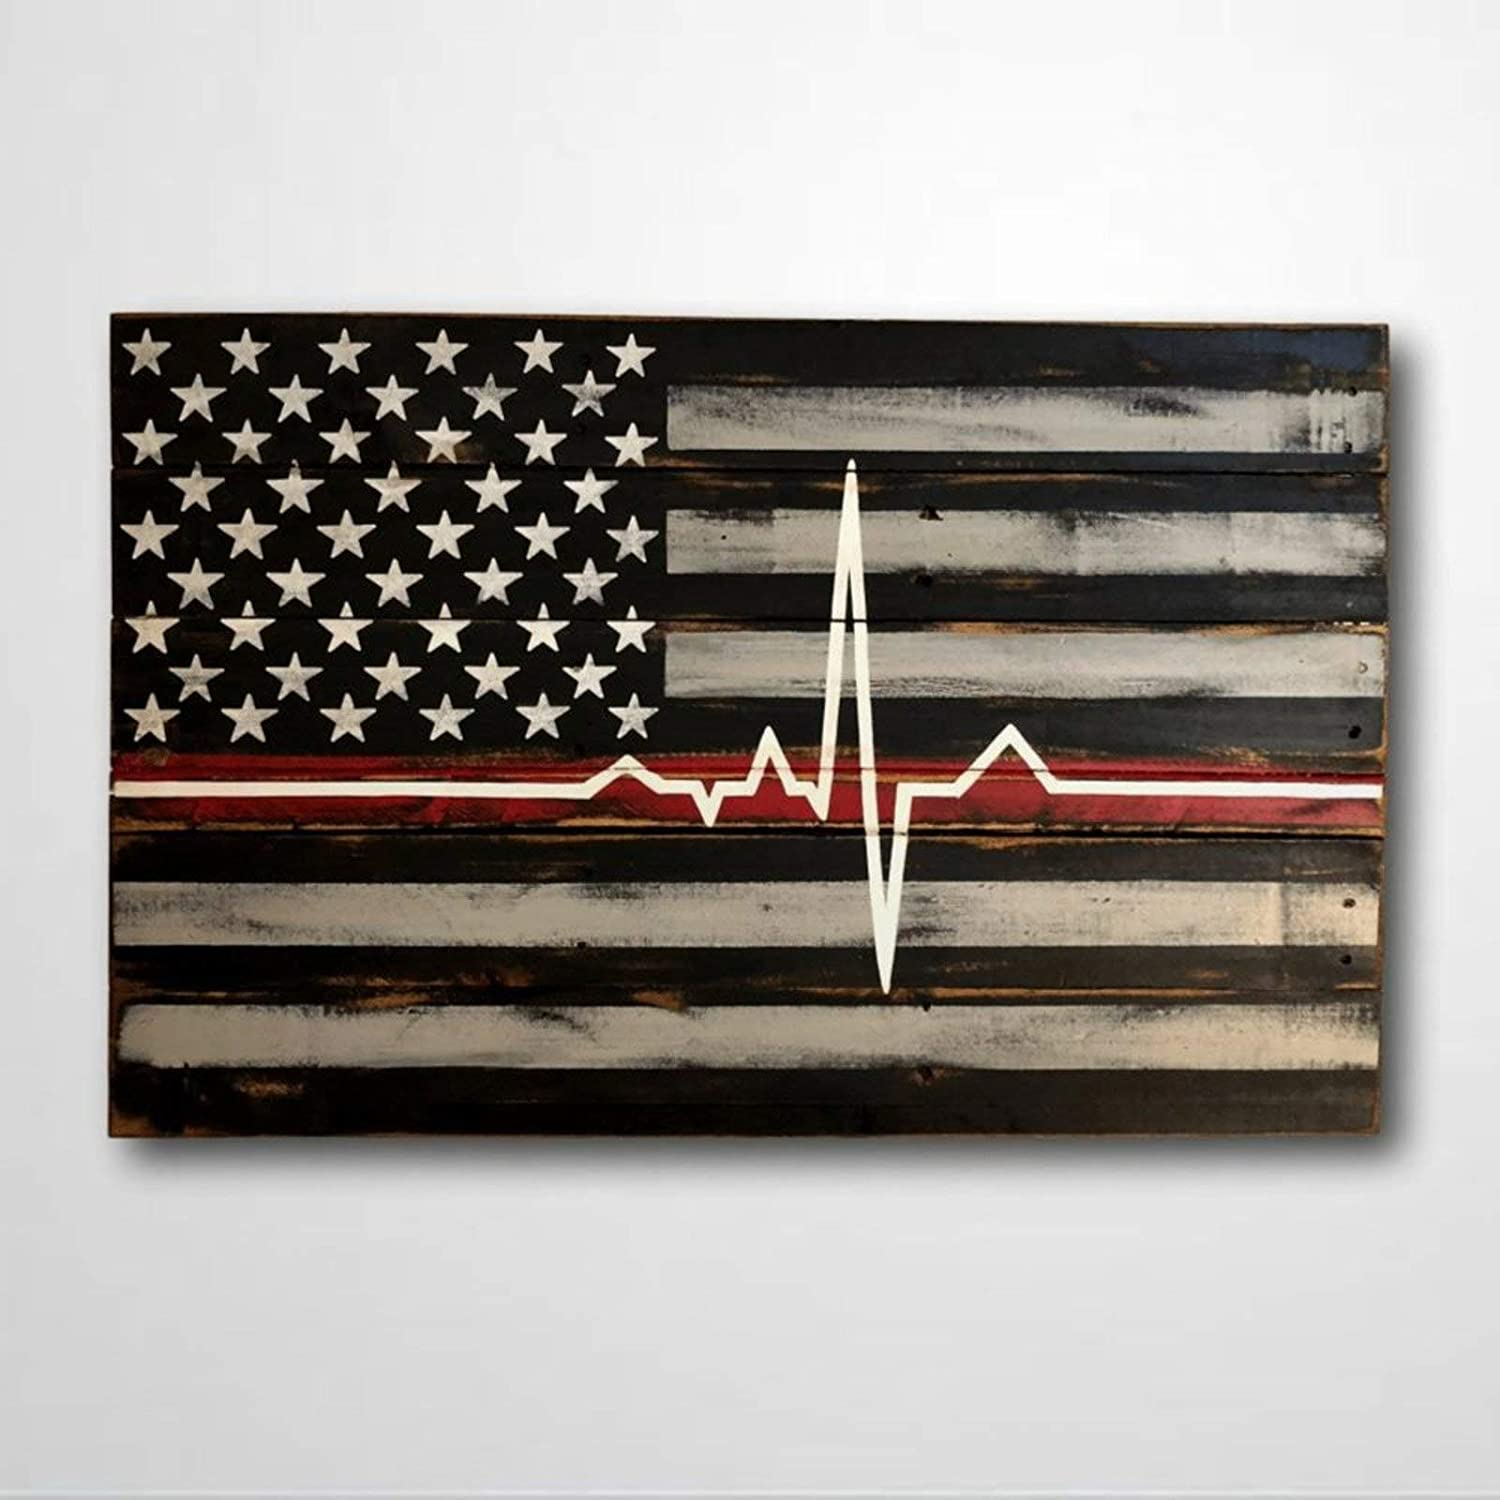 BYRON HOYLE Wooden Sign Firefighter Present Paramedic Present Thin Red Line EMS Present EMT Present Fireman Wood Plaque Wall Art Funny Wood Sign Wall Hanger Home Decor